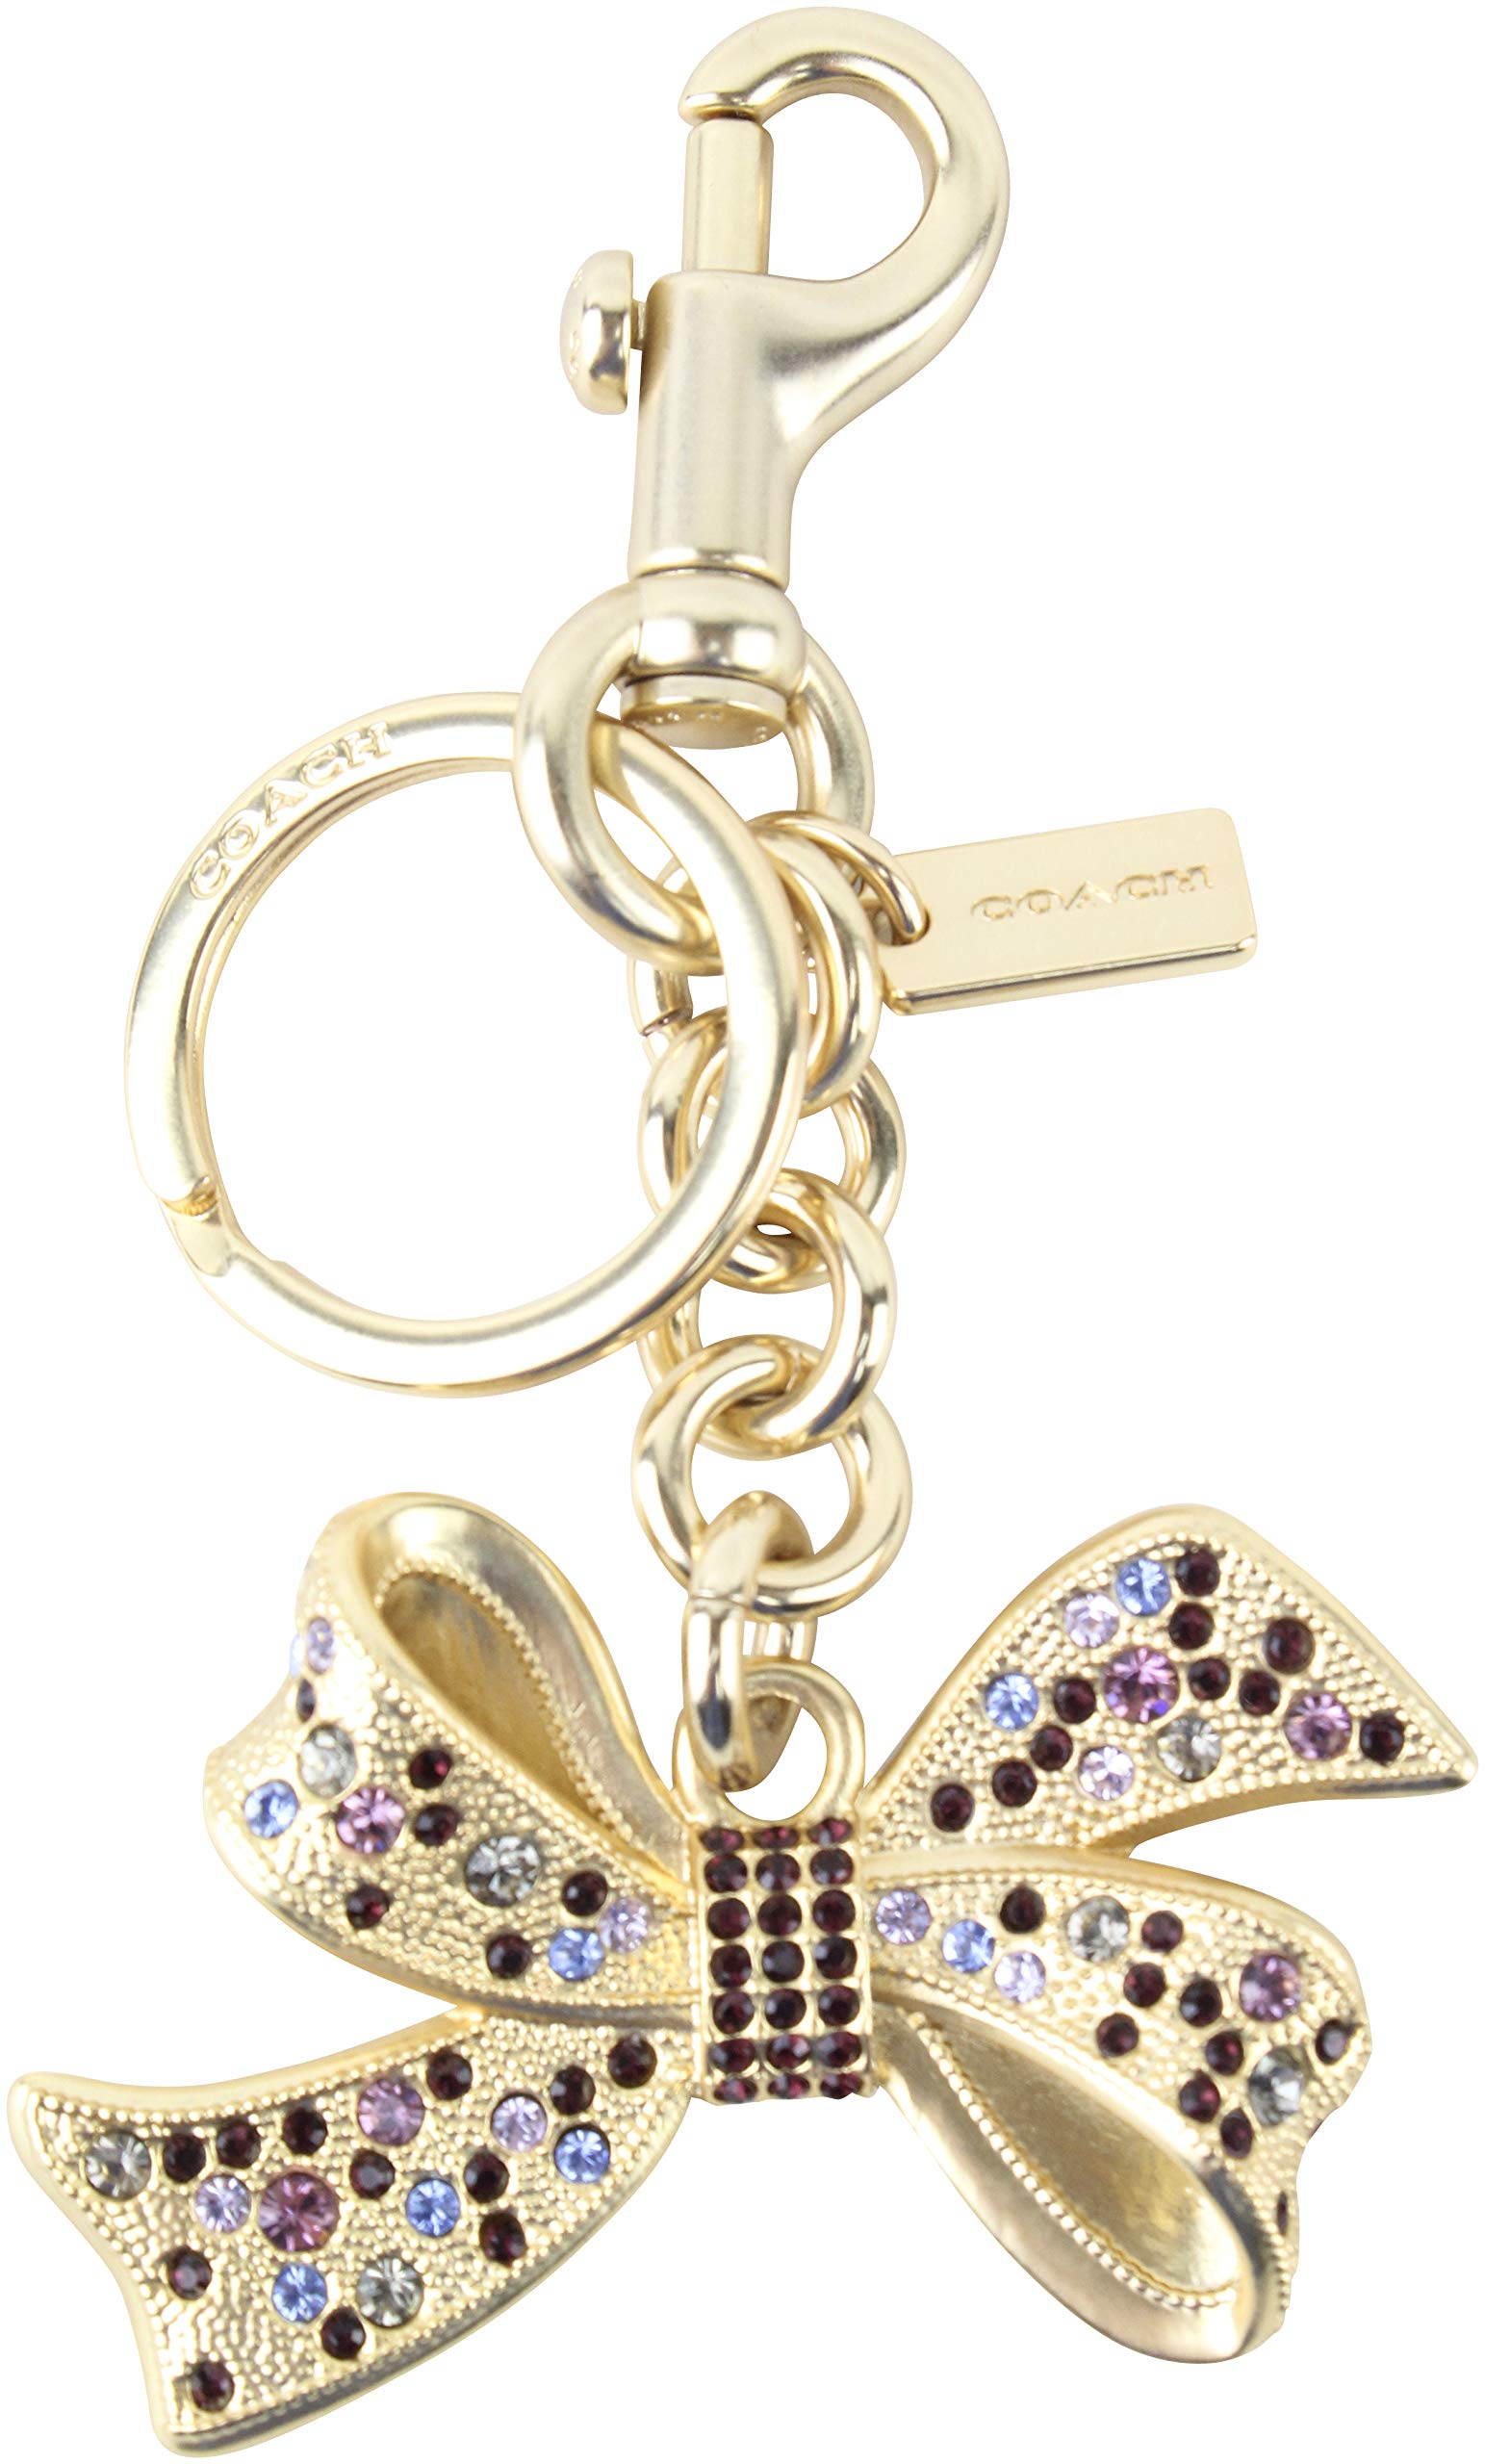 Coach Women S Bow Jeweled Valet Key Ring Purse Charm In Gold One Size Style F74105